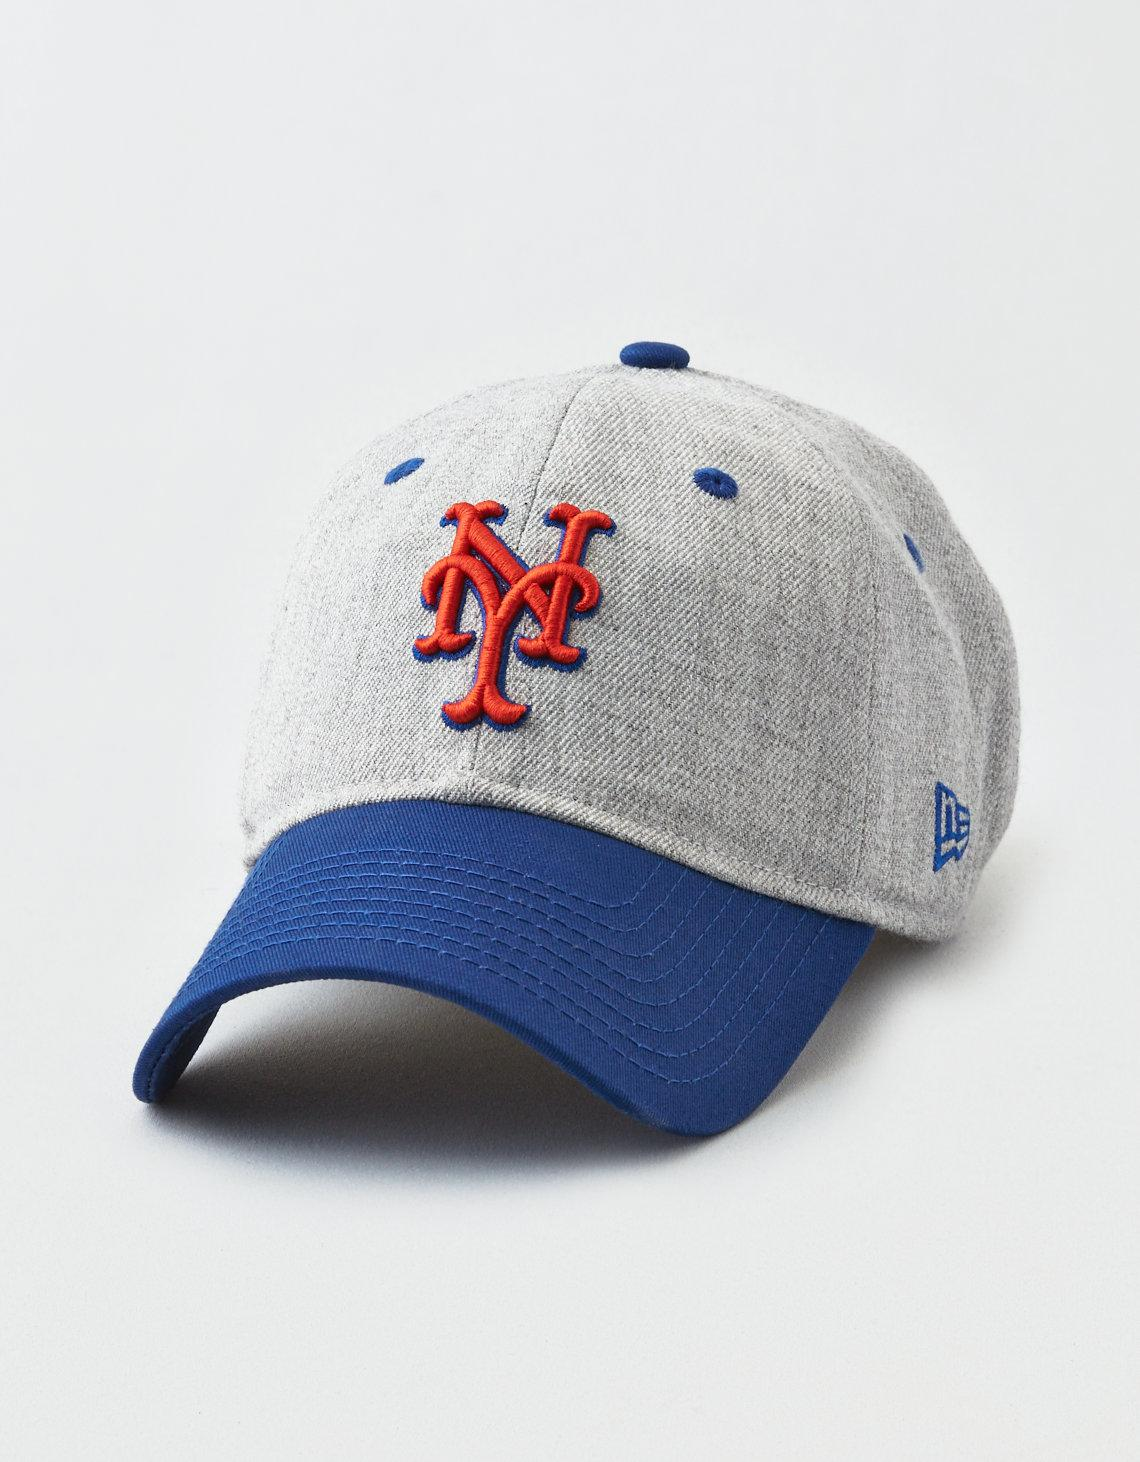 60a6a8f0676 Tailgate. Women s Gray Limited-edition New Era X Ny Mets Baseball Hat.  30  From American Eagle